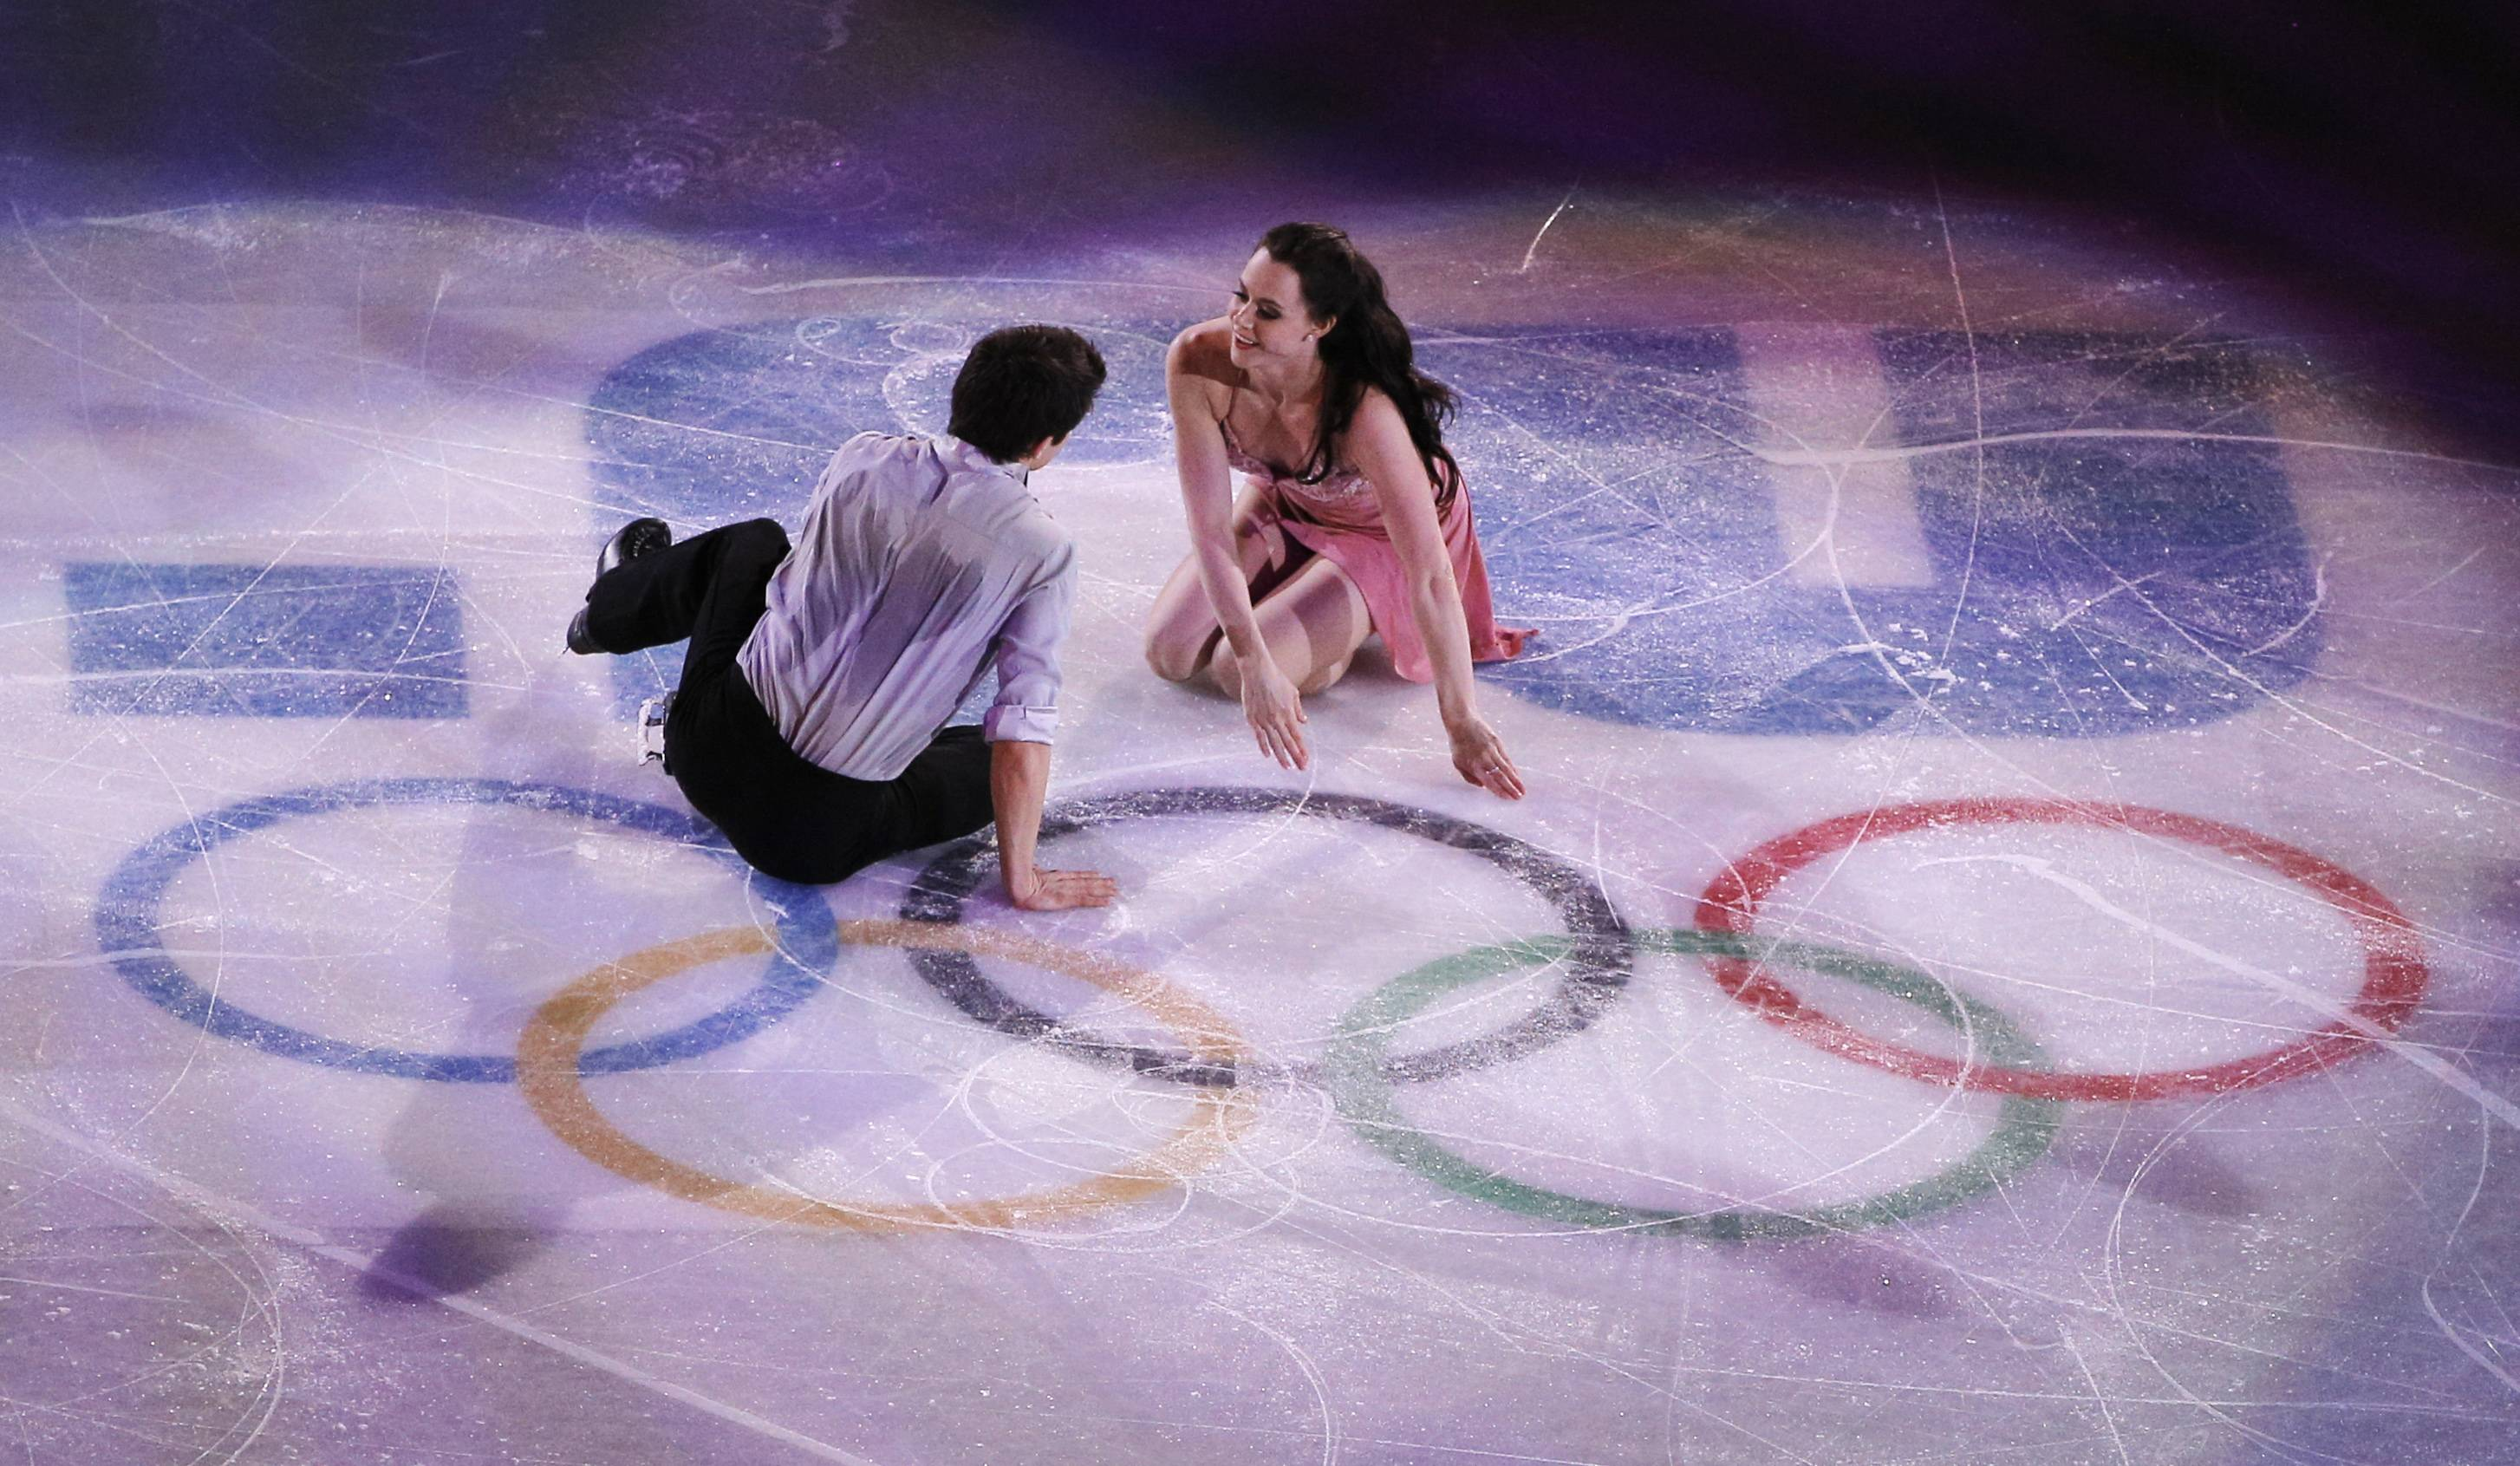 Tessa Virtue and Scott Moir of Canada perform during the figure skating exhibition gala at the Iceberg Skating Palace during the 2014 Winter Olympics, Saturday, Feb. 22, 2014, in Sochi, Russia.